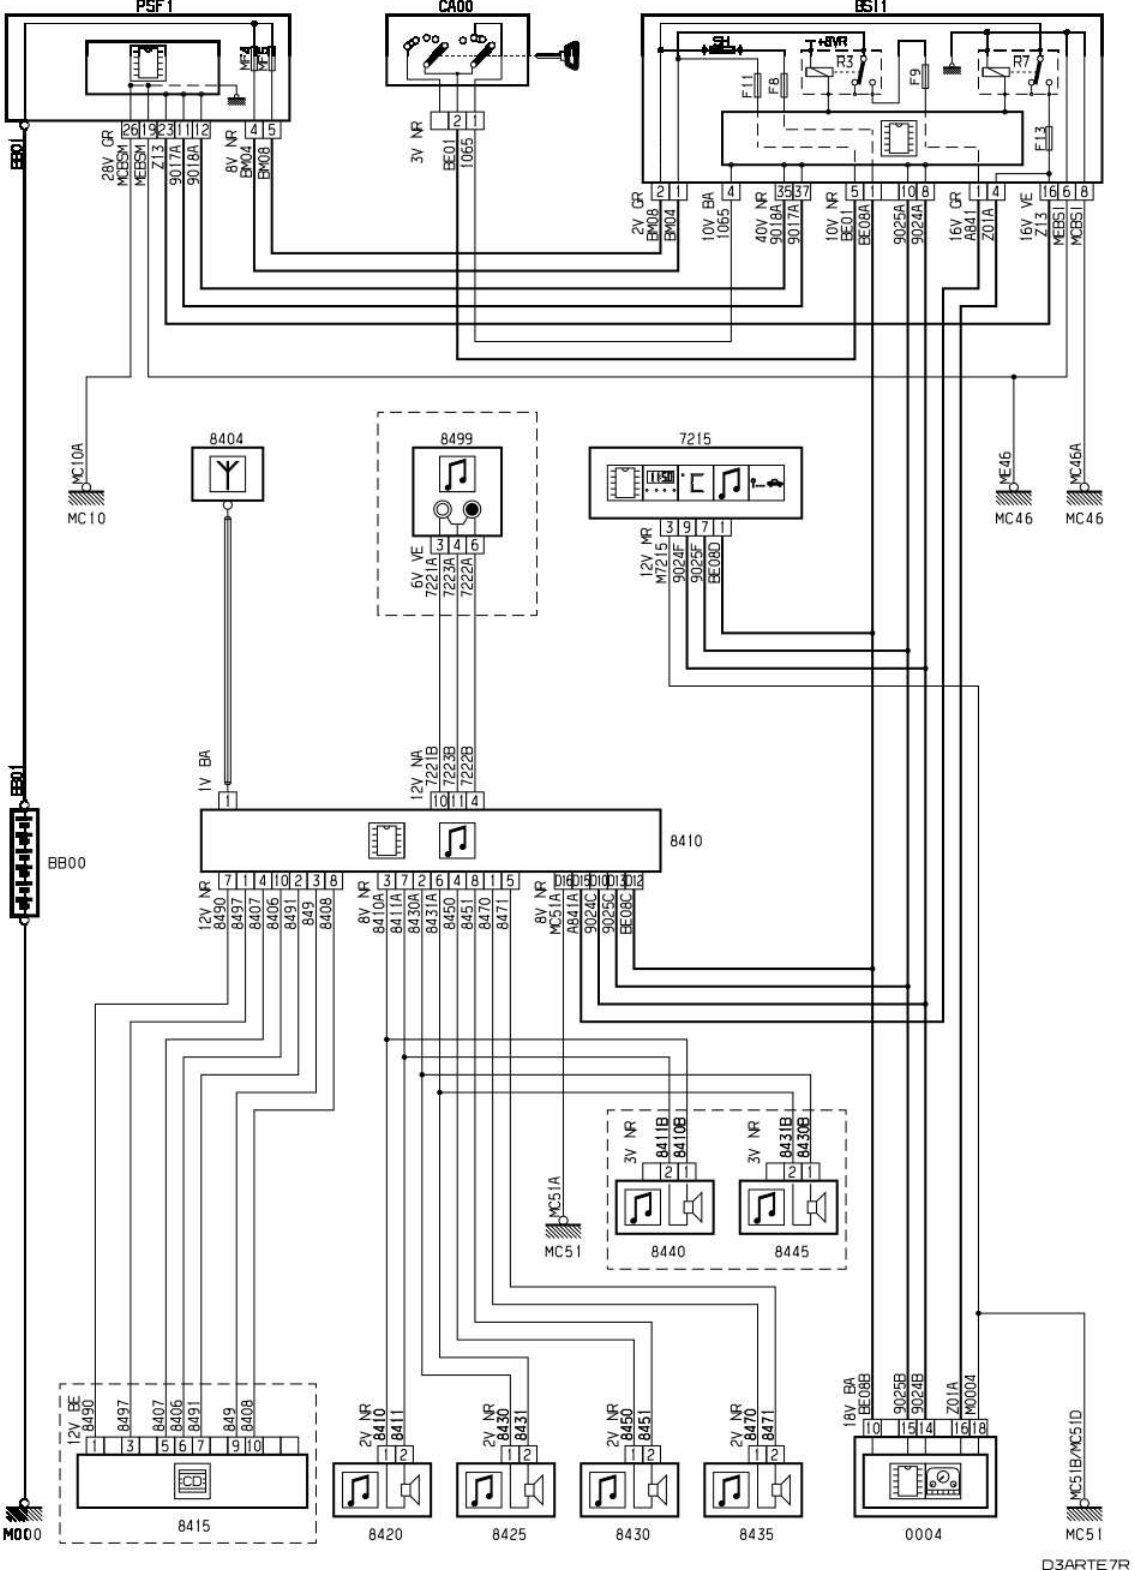 Peugeot Rd4 Wiring Diagram - Wiring Diagram Online on peugeot 505 wiring diagram, peugeot 508 wiring diagram, peugeot 307 owner's manual, peugeot 307 fuse diagram,